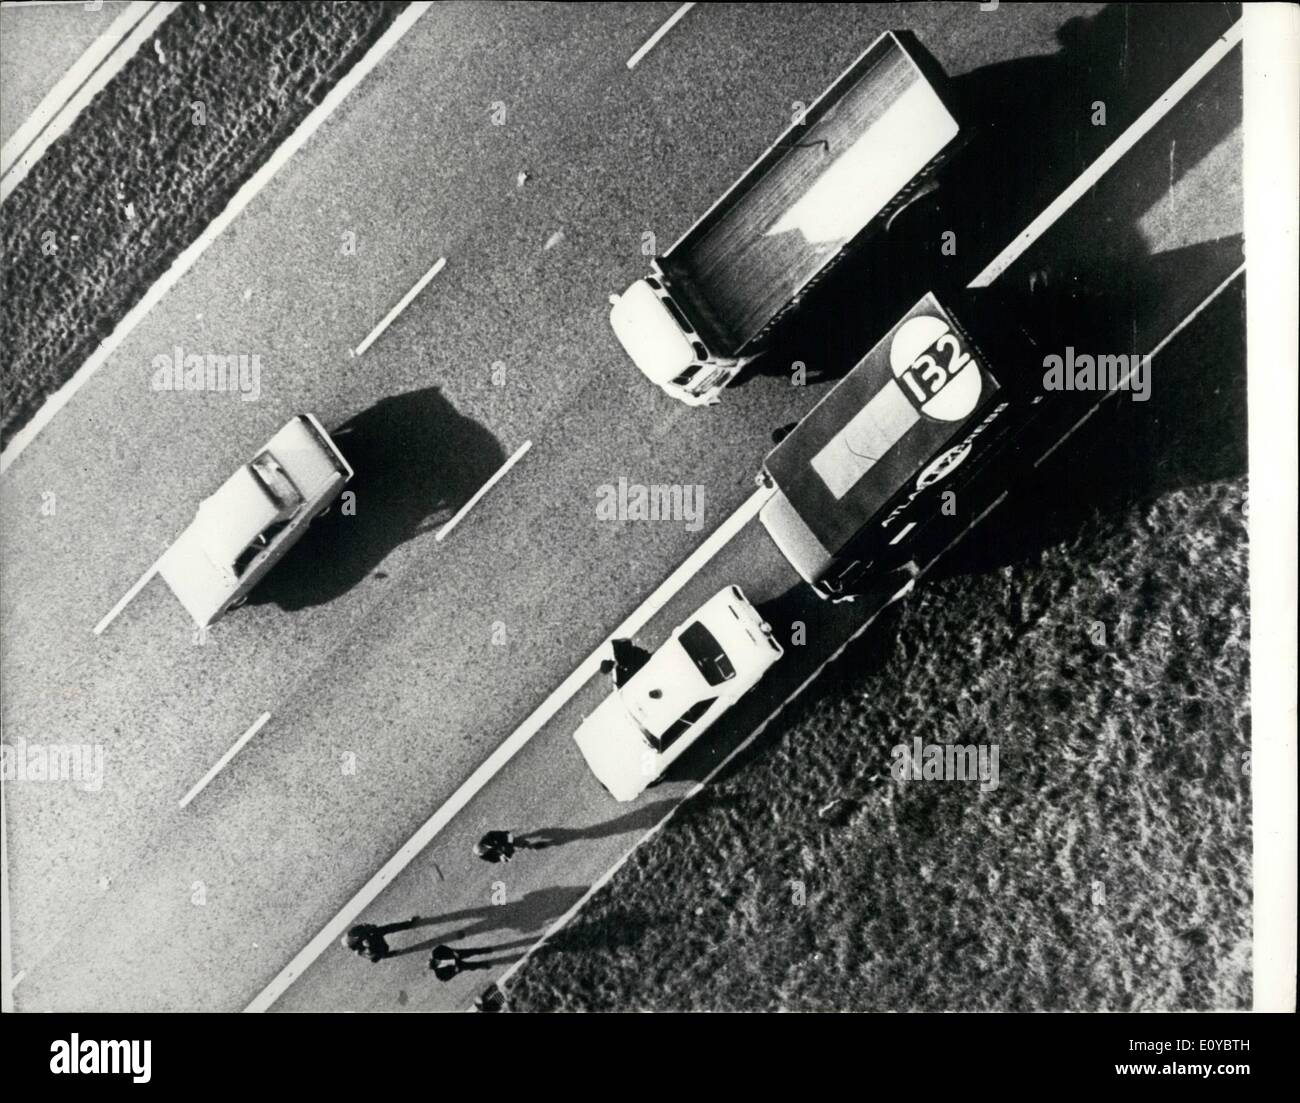 Oct. 10, 1969 - The Spy-in-the-sky helicopters employed to track down hijacked Lorries.: An operation was staged yesterday to demonstrate the efficiency of helicopters which have joined the Vehicle Obsever Corps, the voluntary organisation which watched for stolen lorries. Two helicopters are in the scheme at the moment, and later it is hoped that other private companies operating helicopters will join on a voluntary basis. The idea is that the pilots should report anything suspicious noted during their journeys - Stock Image